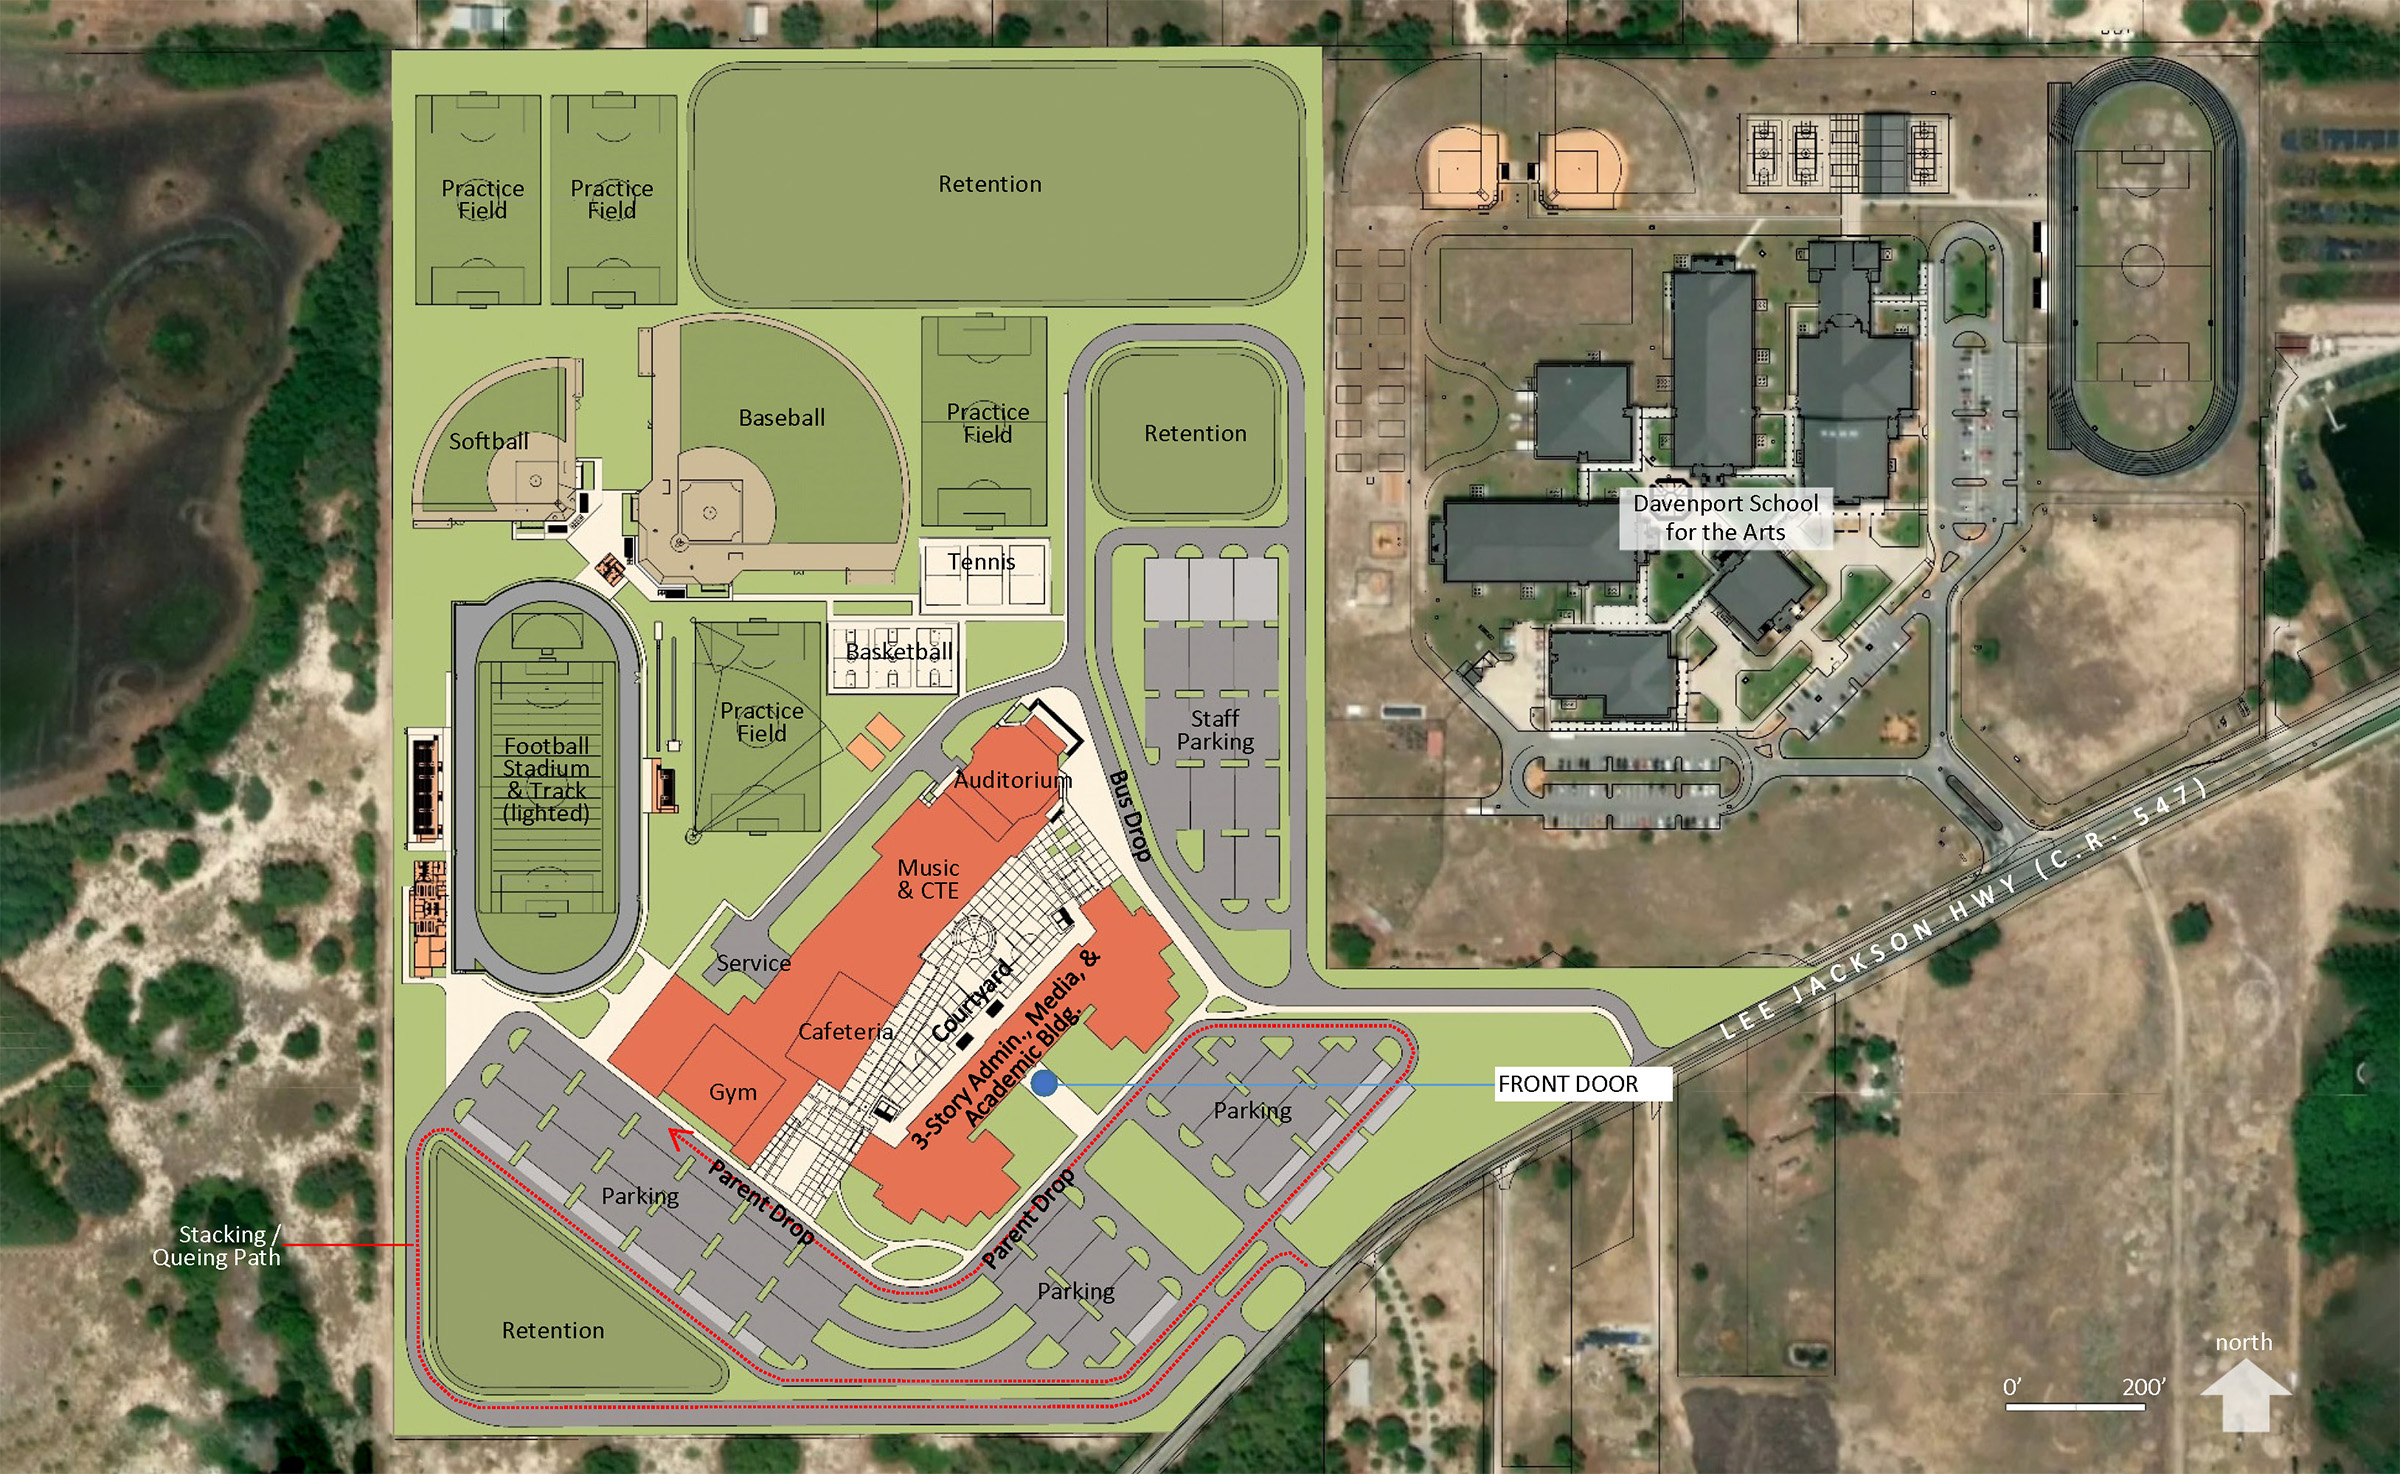 Aerial rendering of a new high school planned for Davenport